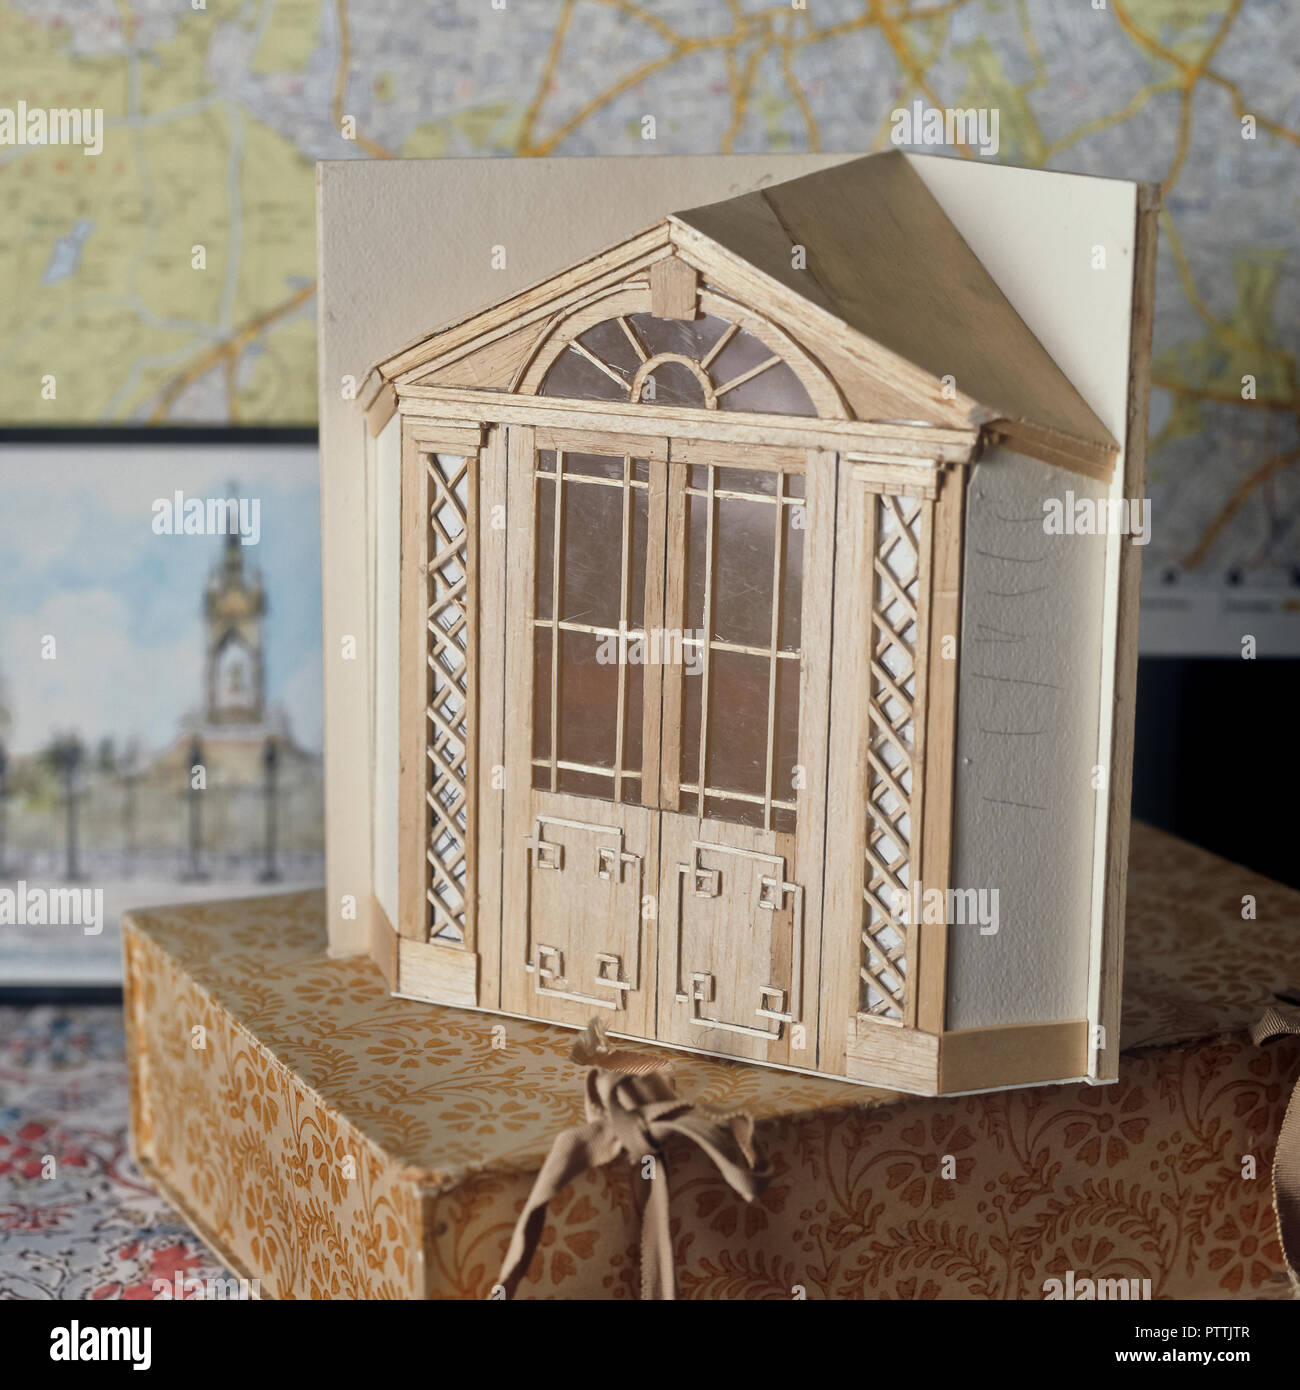 Architectural scale model in Lord Snowdon's Kensington home - Stock Image